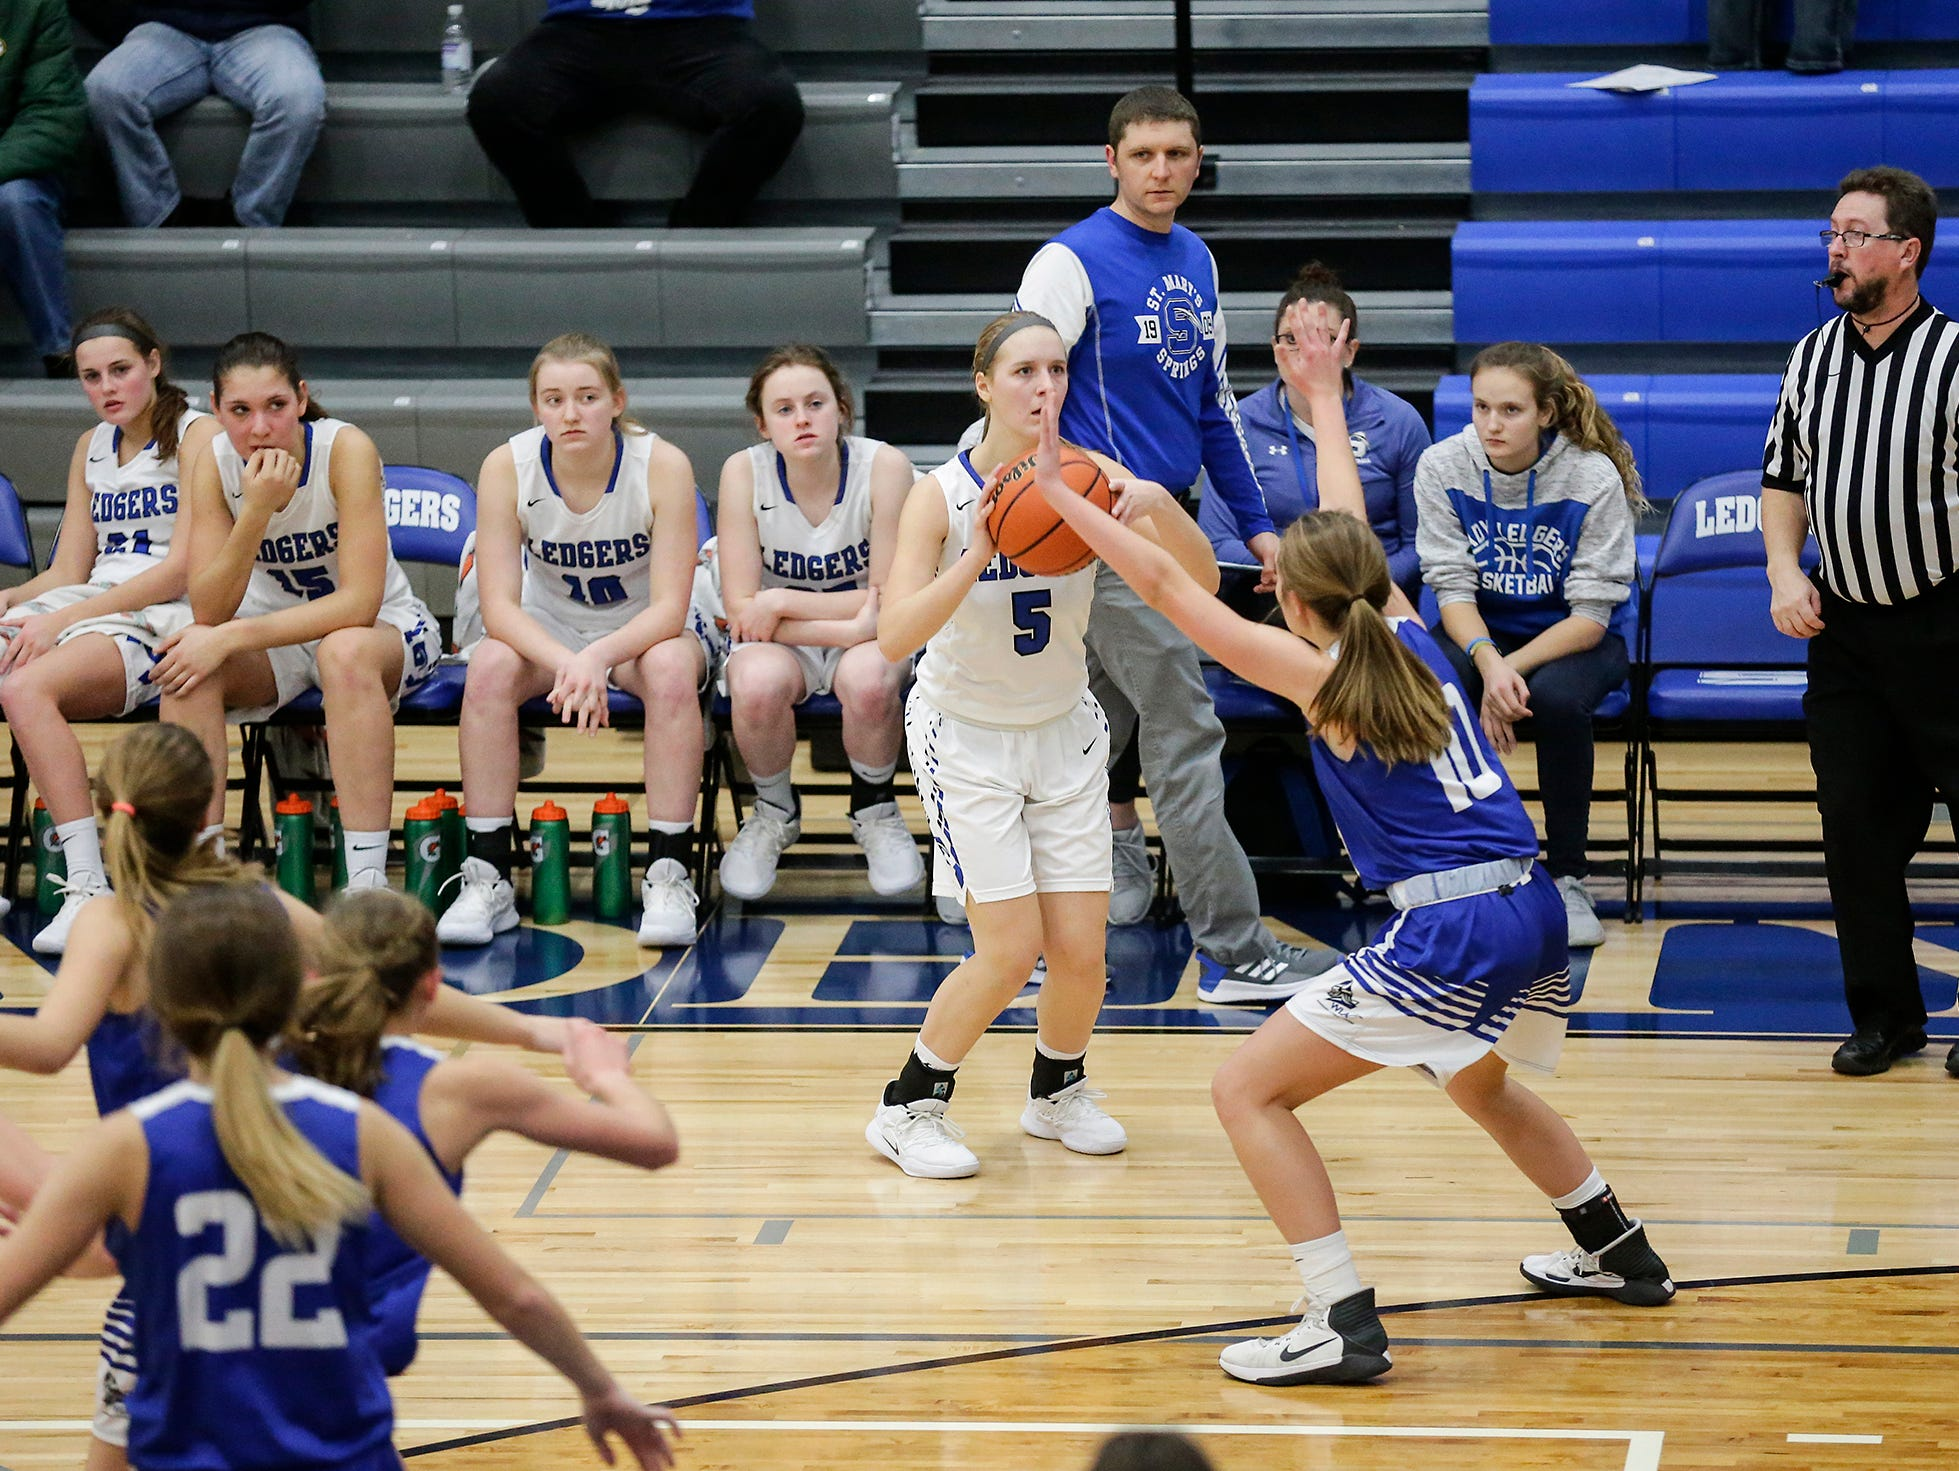 St. Mary's Springs Academy girls basketball's Gracie Rieder attempts a three point shot against Winnebago Lutheran Academy during their game Tuesday, December 18, 2018 in Fond du Lac. Winnebago Lutheran Academy won the game 58-54. Doug Raflik/USA TODAY NETWORK-Wisconsin